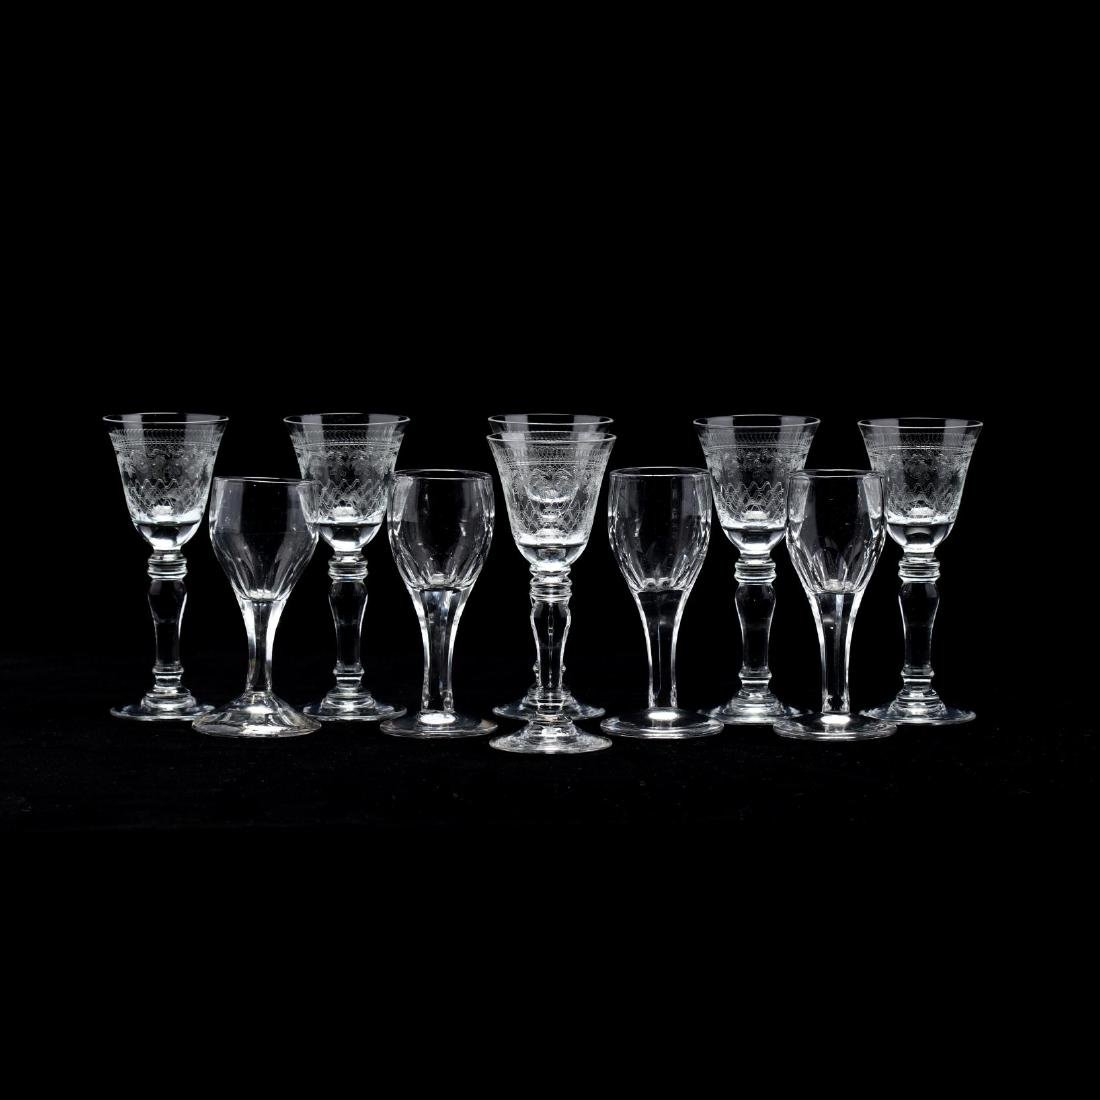 Two Sets of Wine Glasses